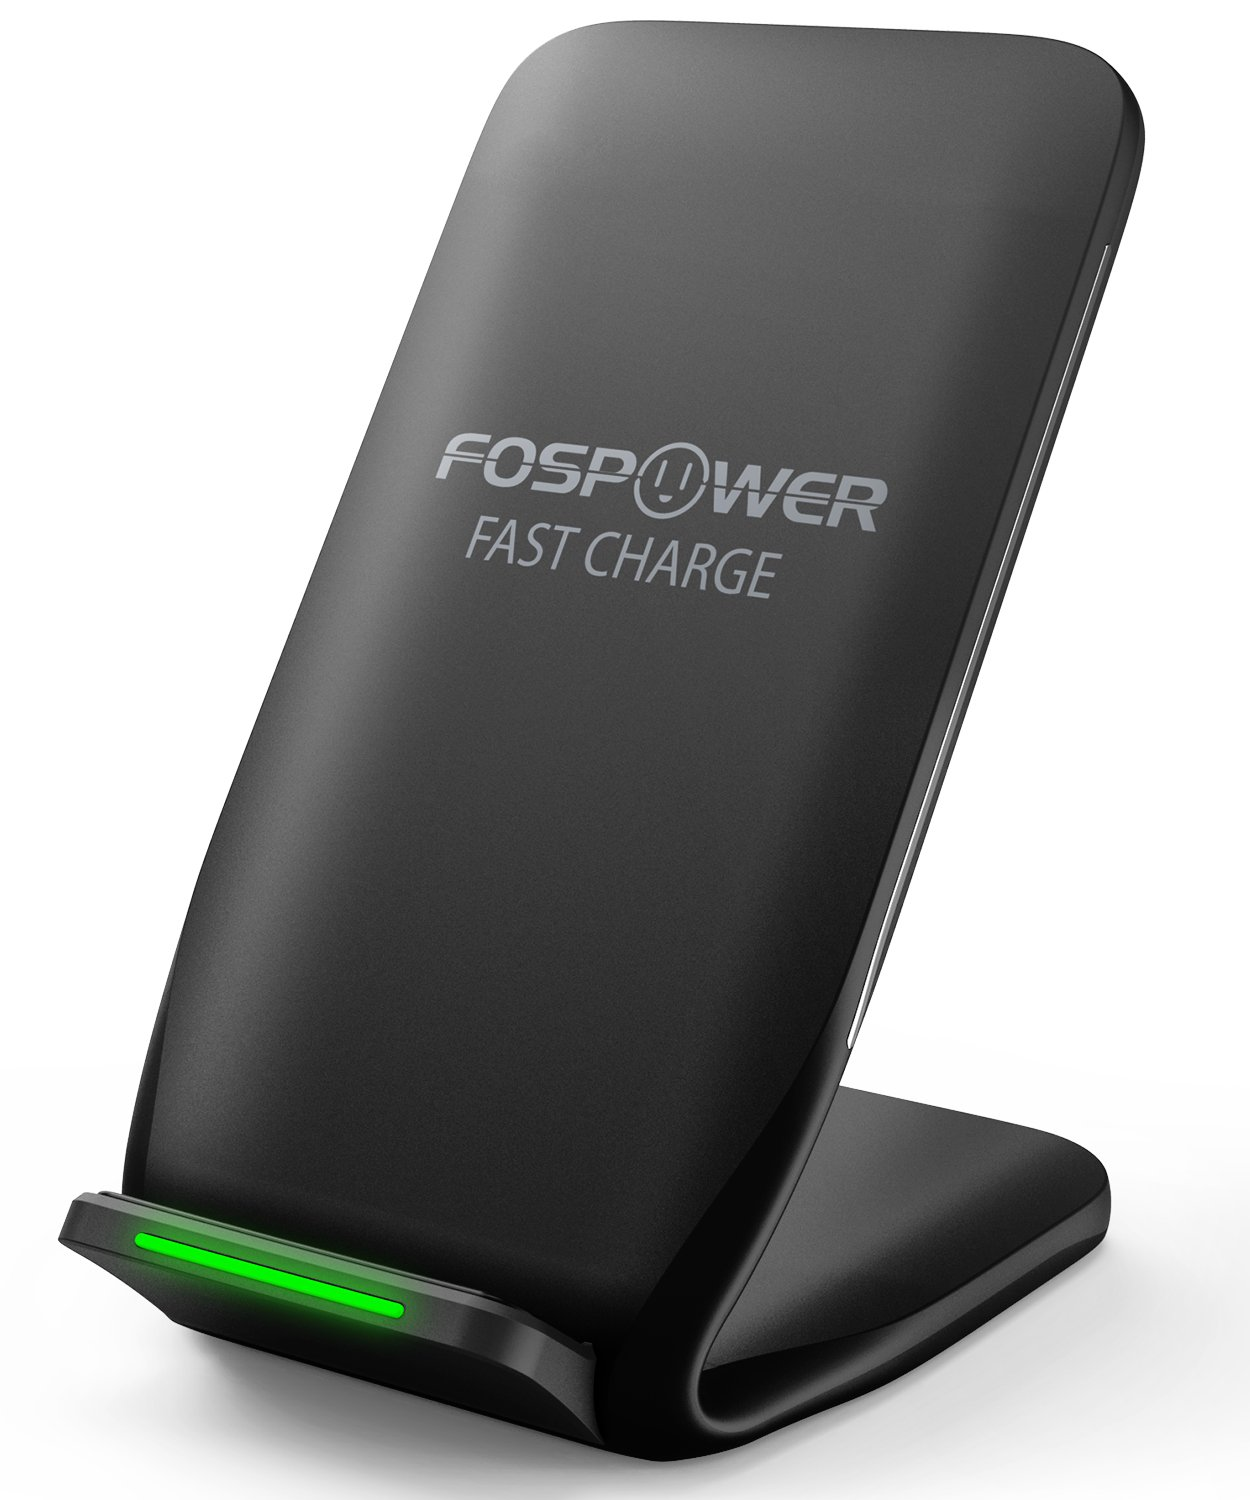 Qi Wireless Charger, FosPower 2-Coil Qi Wireless Fast Charging Phone Stand (AC Adapter Not Included) Compatible with iPhone X/8 Plus/8, Galaxy S9 Plus/S9/Note 9, Google Pixel 3 XL/3, LG V30/G6 FOSCHR-2368